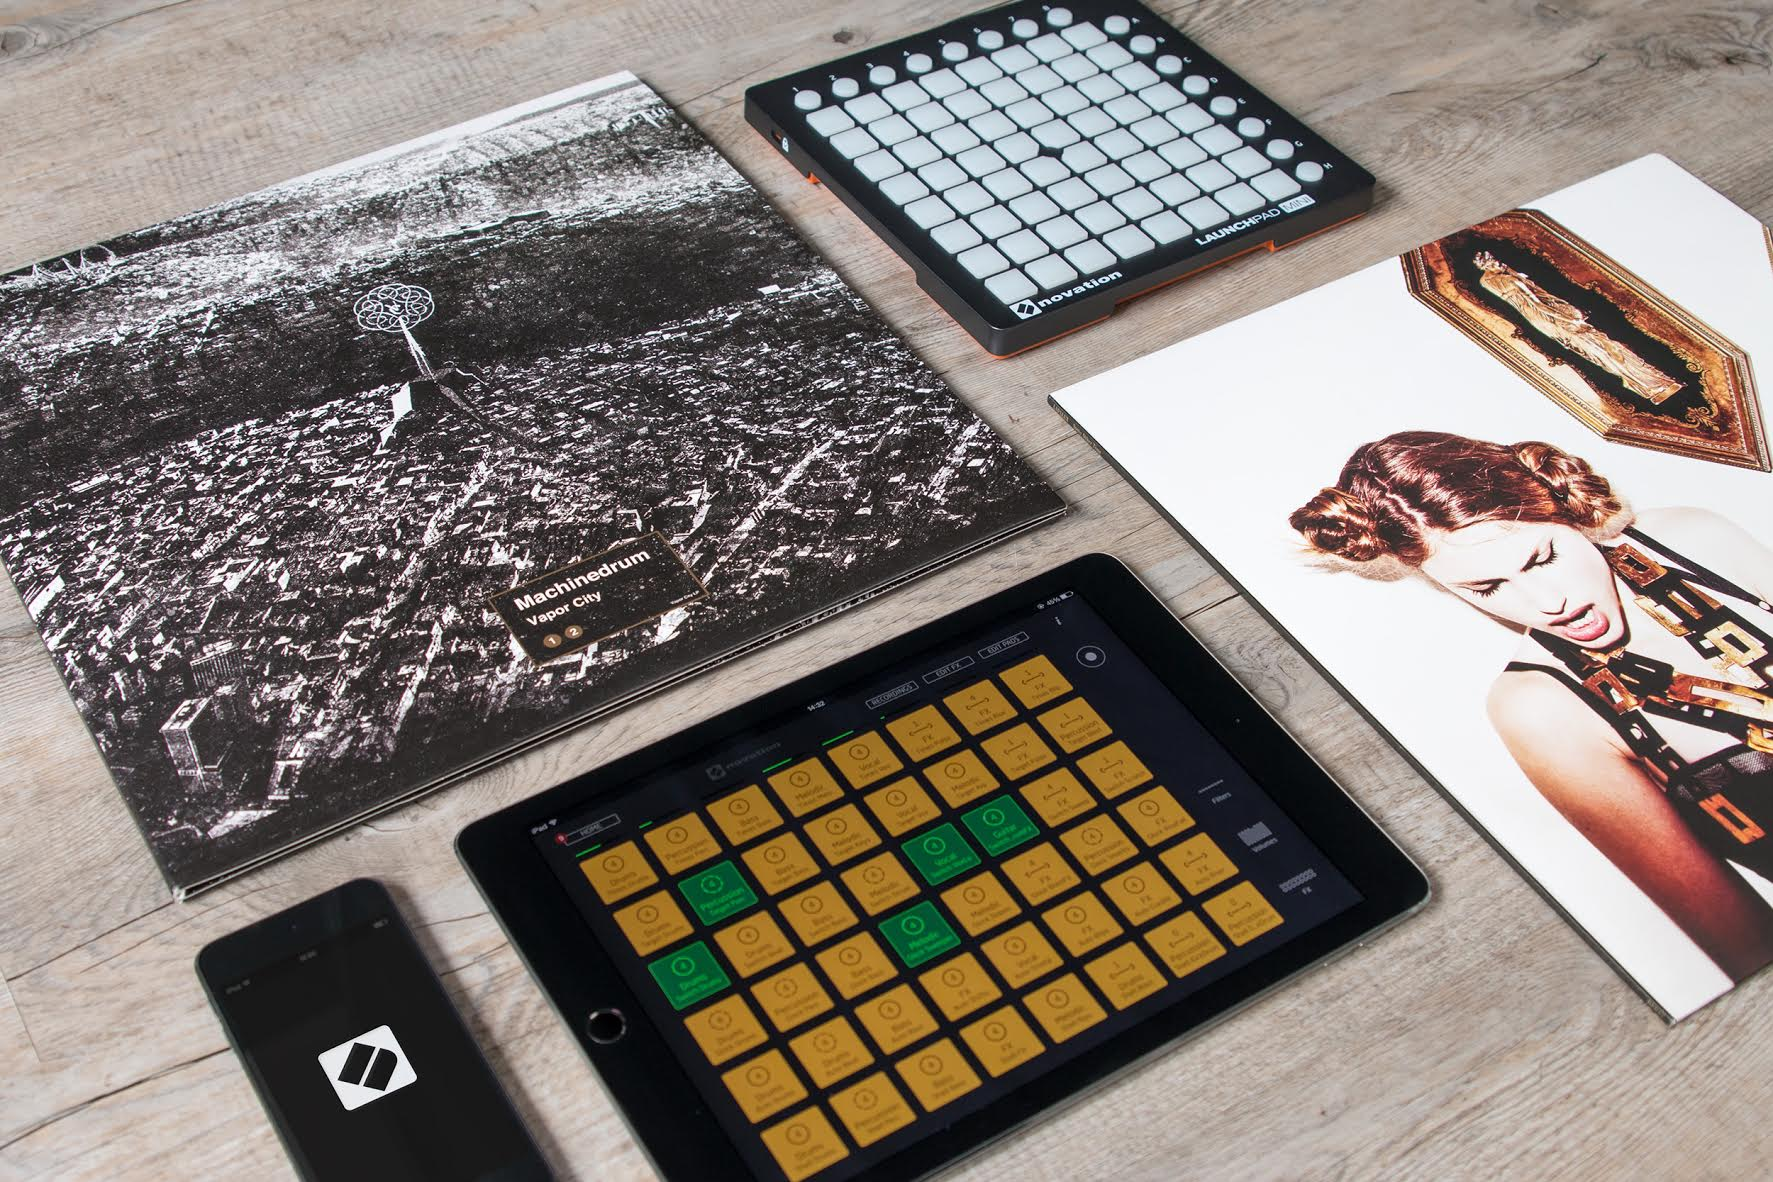 Here's what happens when artists meet up with Launchpad on iOS - CDM